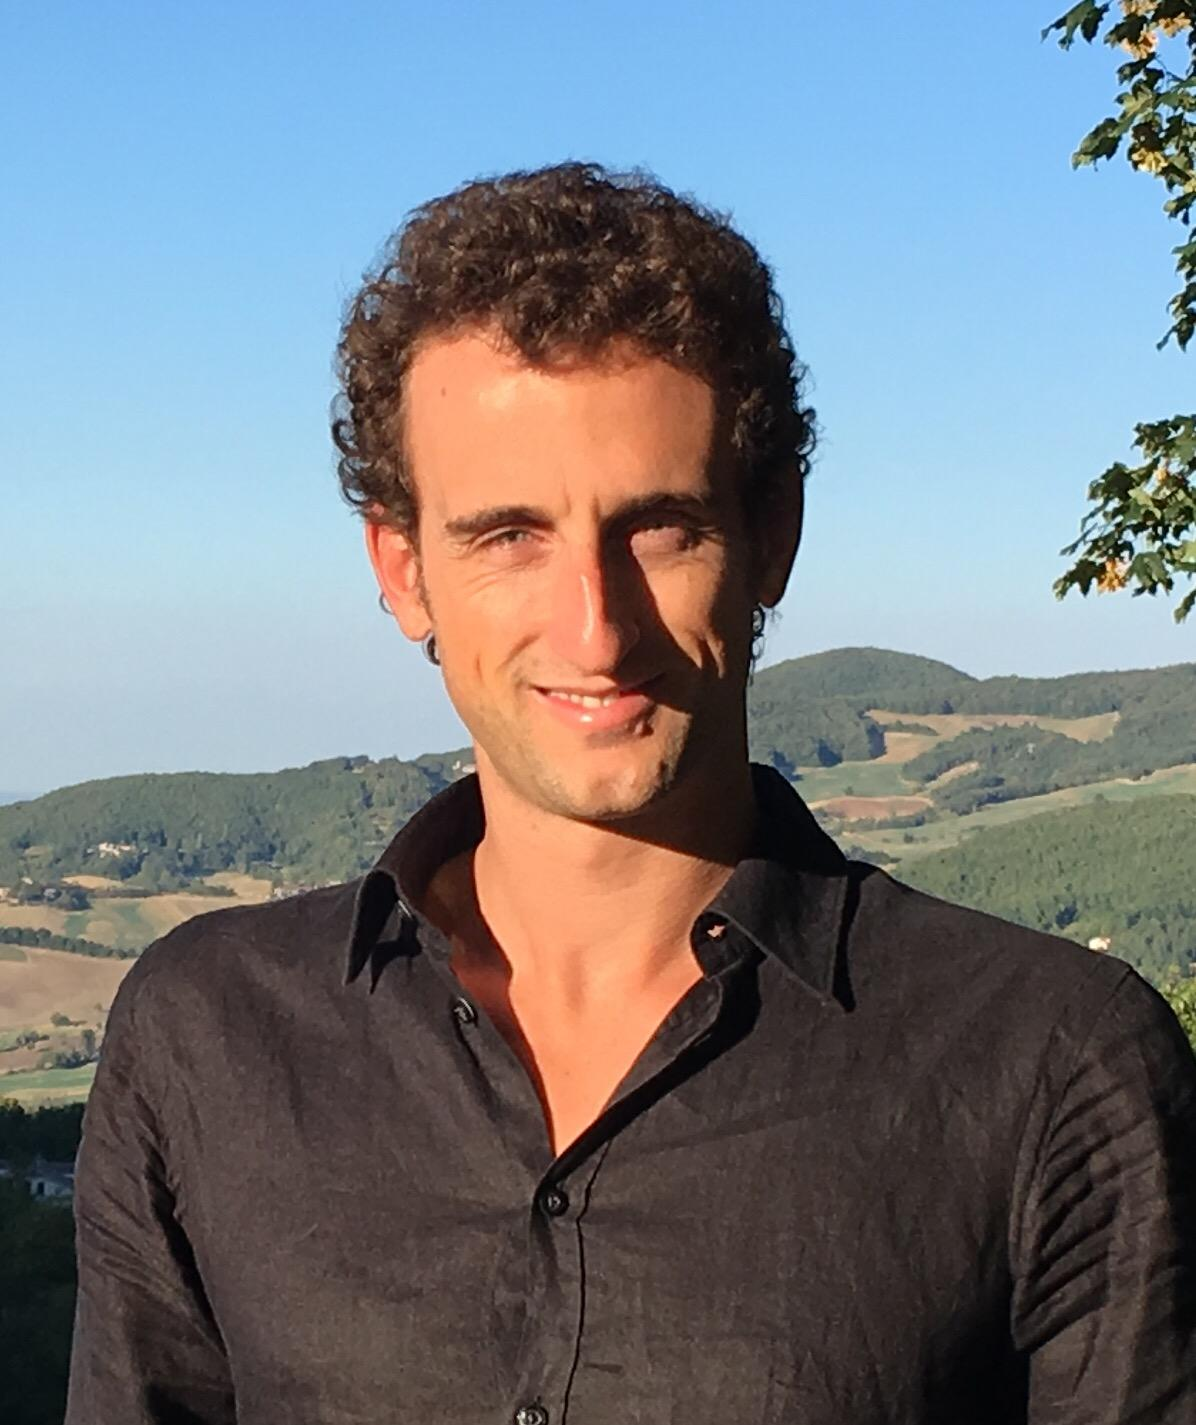 gFT member Jacopo Montali successfully defends his PhD thesis